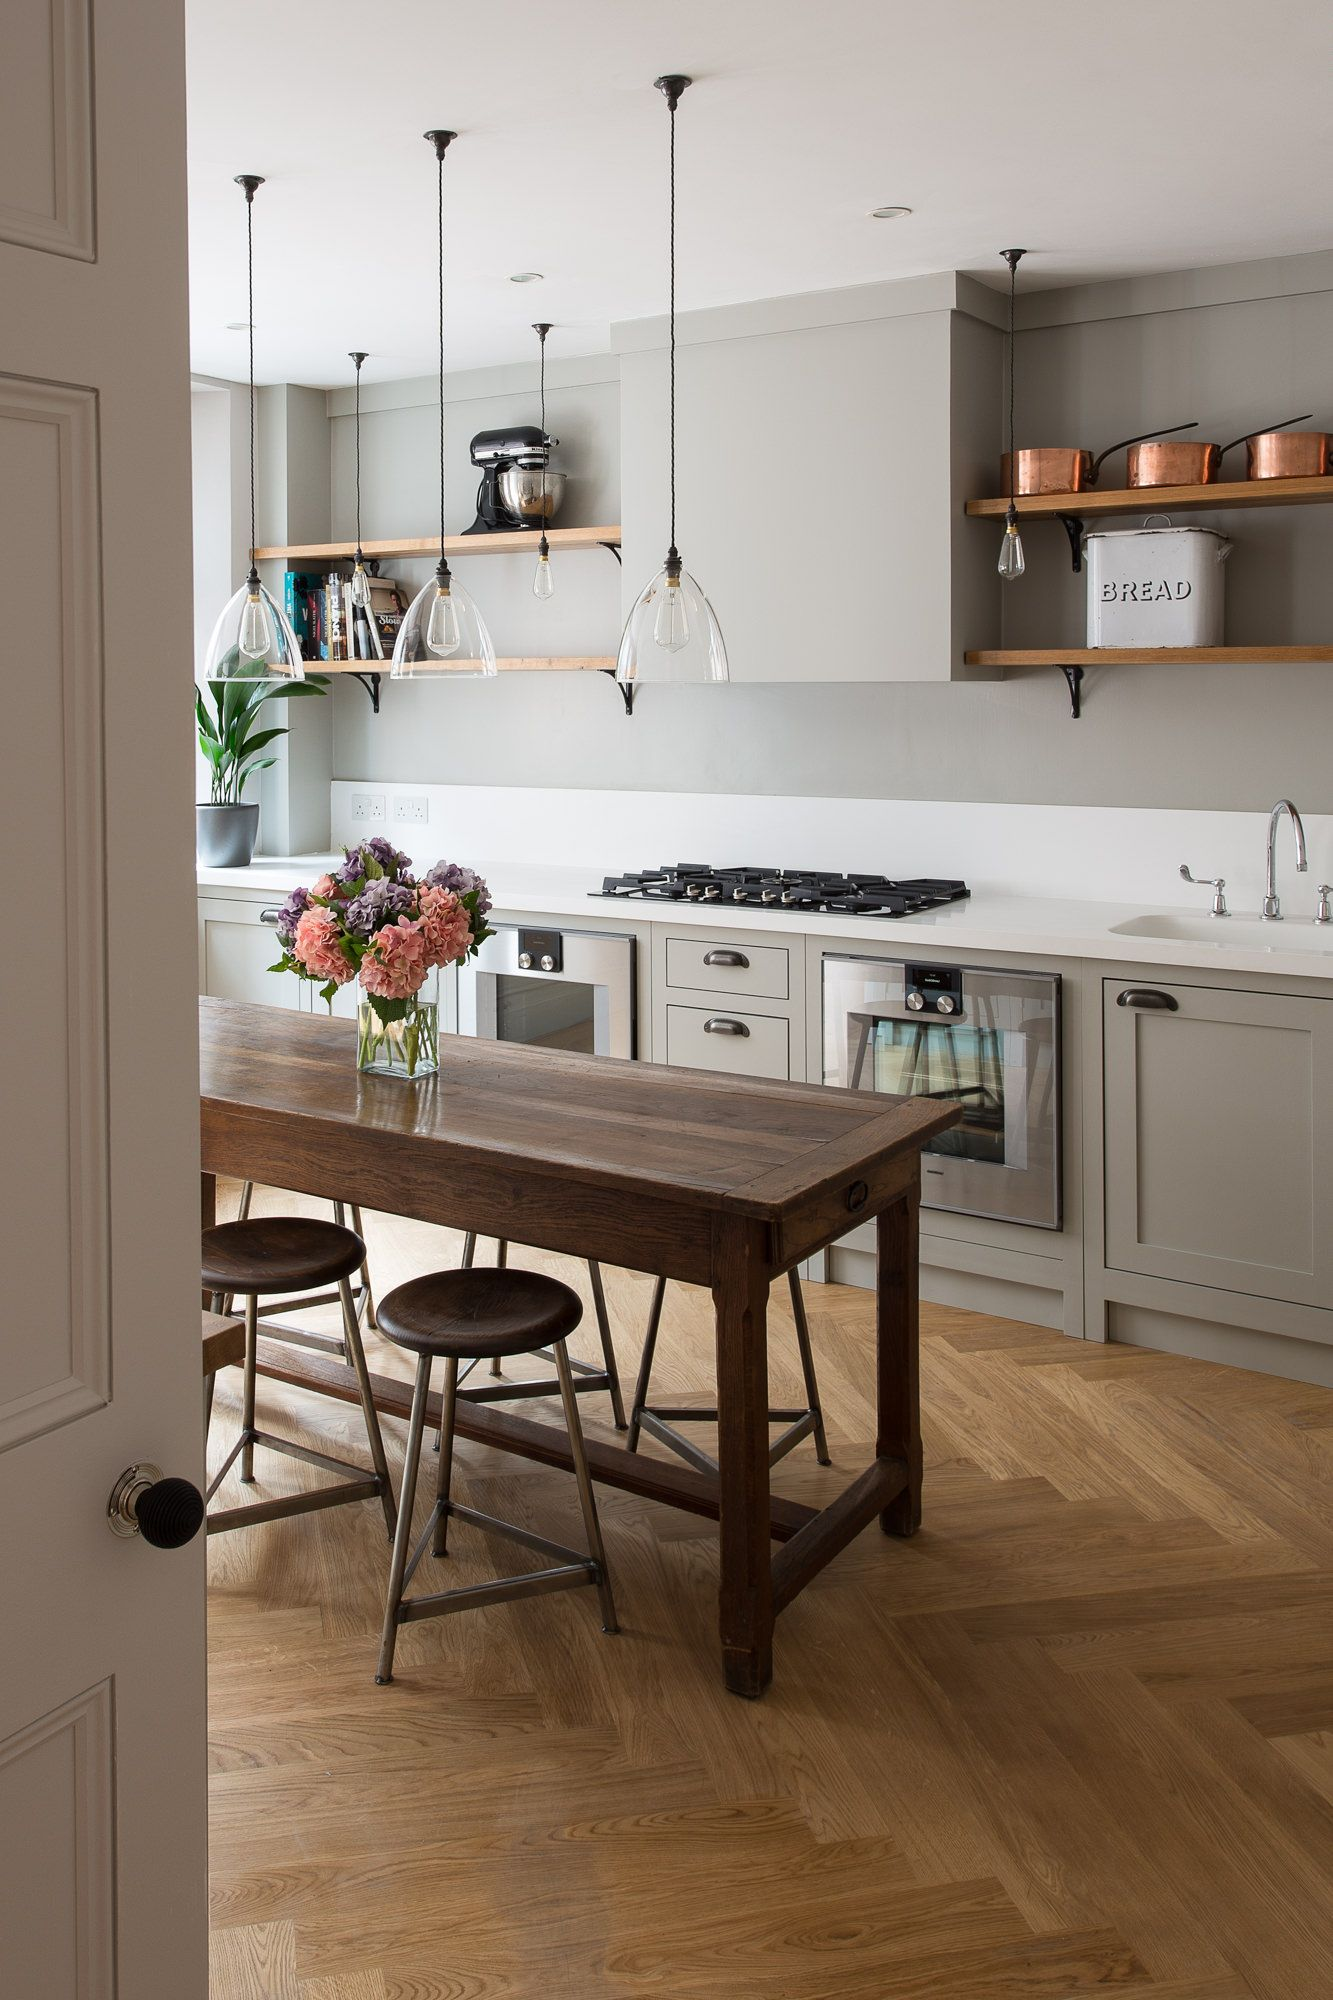 Kensington Kitchen Cabinets: Kensington – The Shaker Kitchen